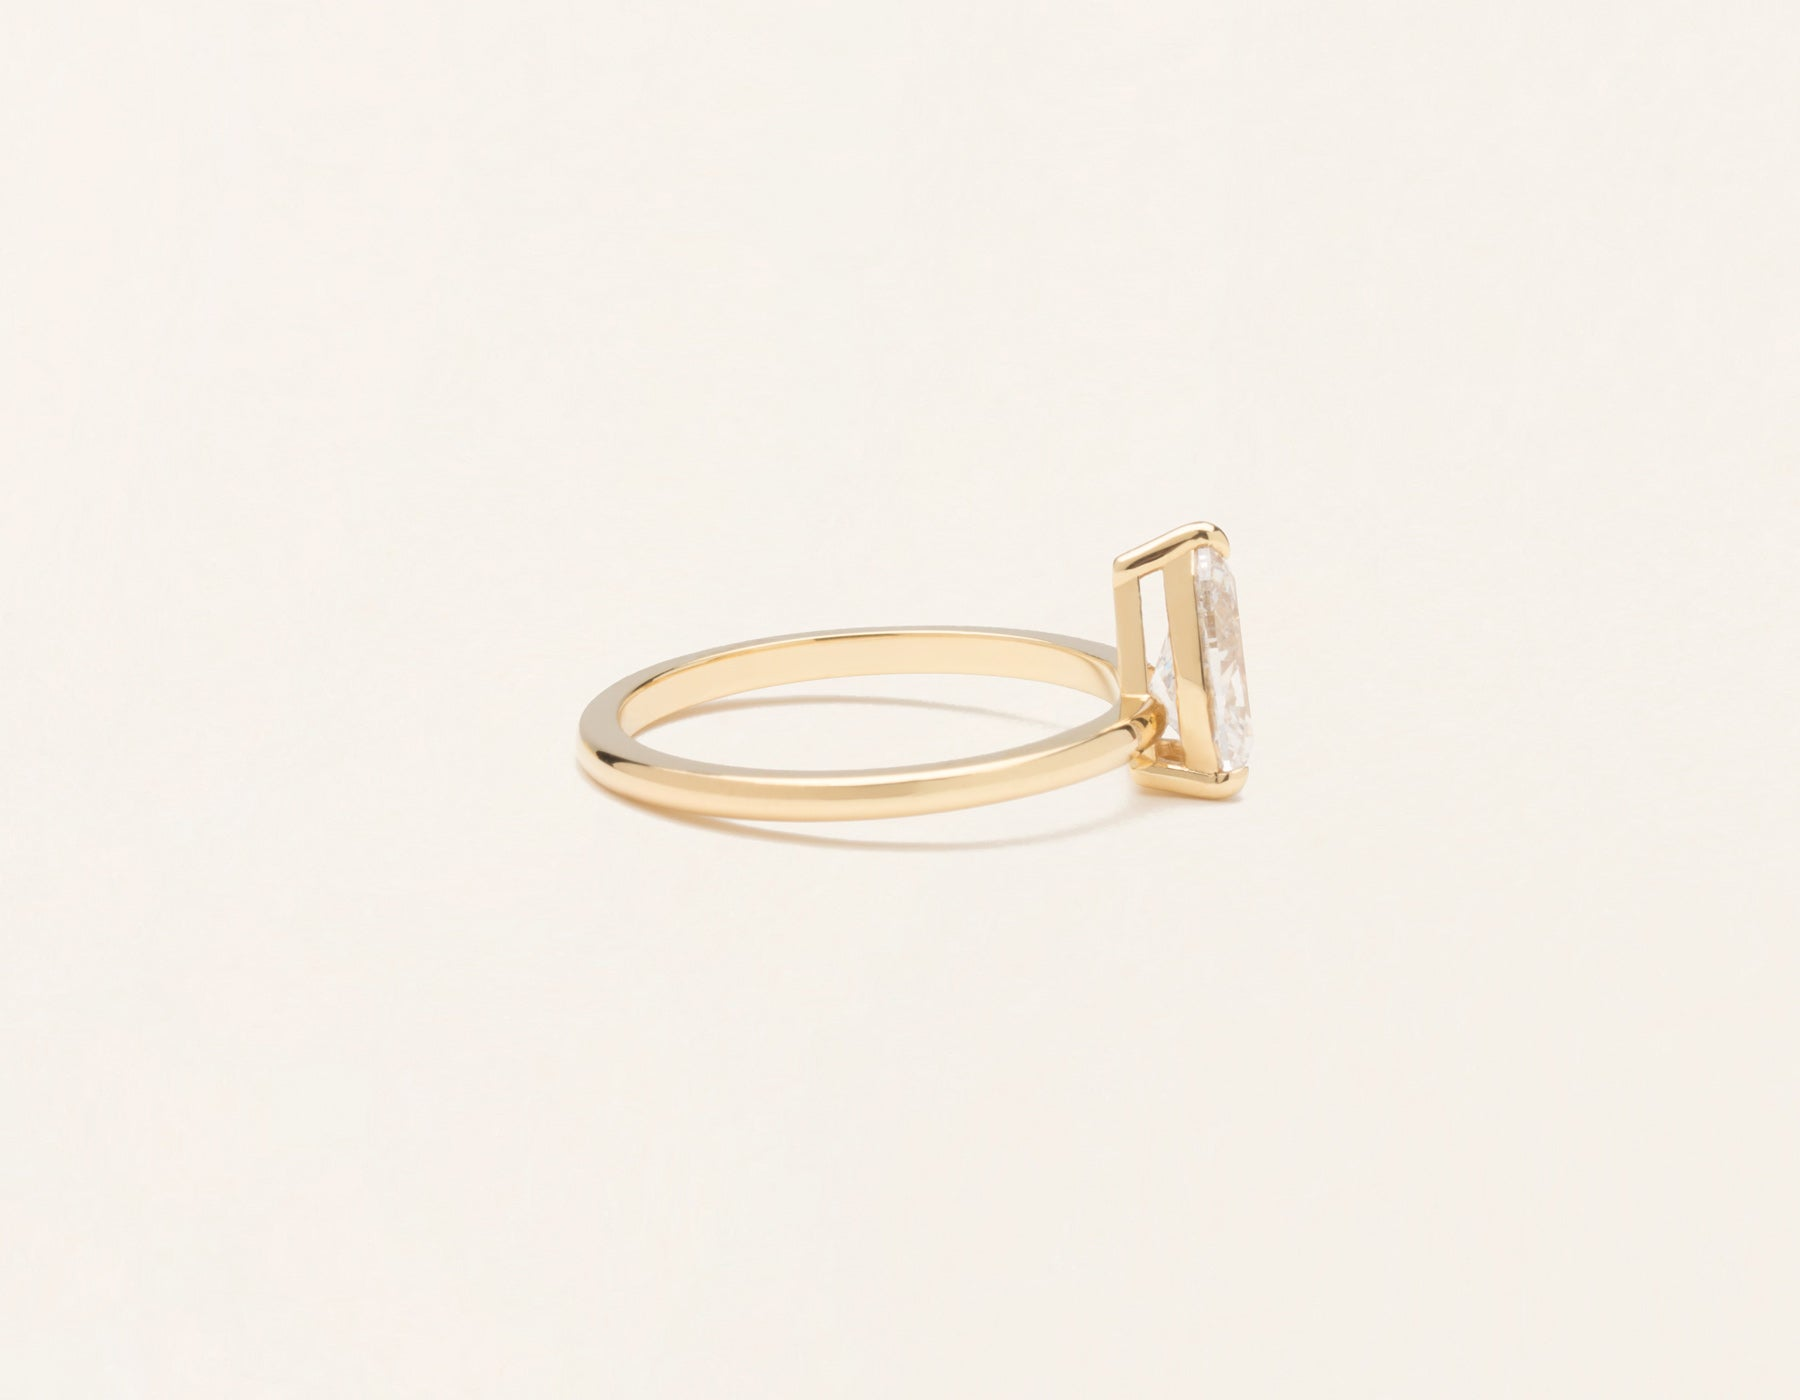 Simple modern 18k solid yellow gold 1 carat pear diamond engagement ring Vrai & Oro